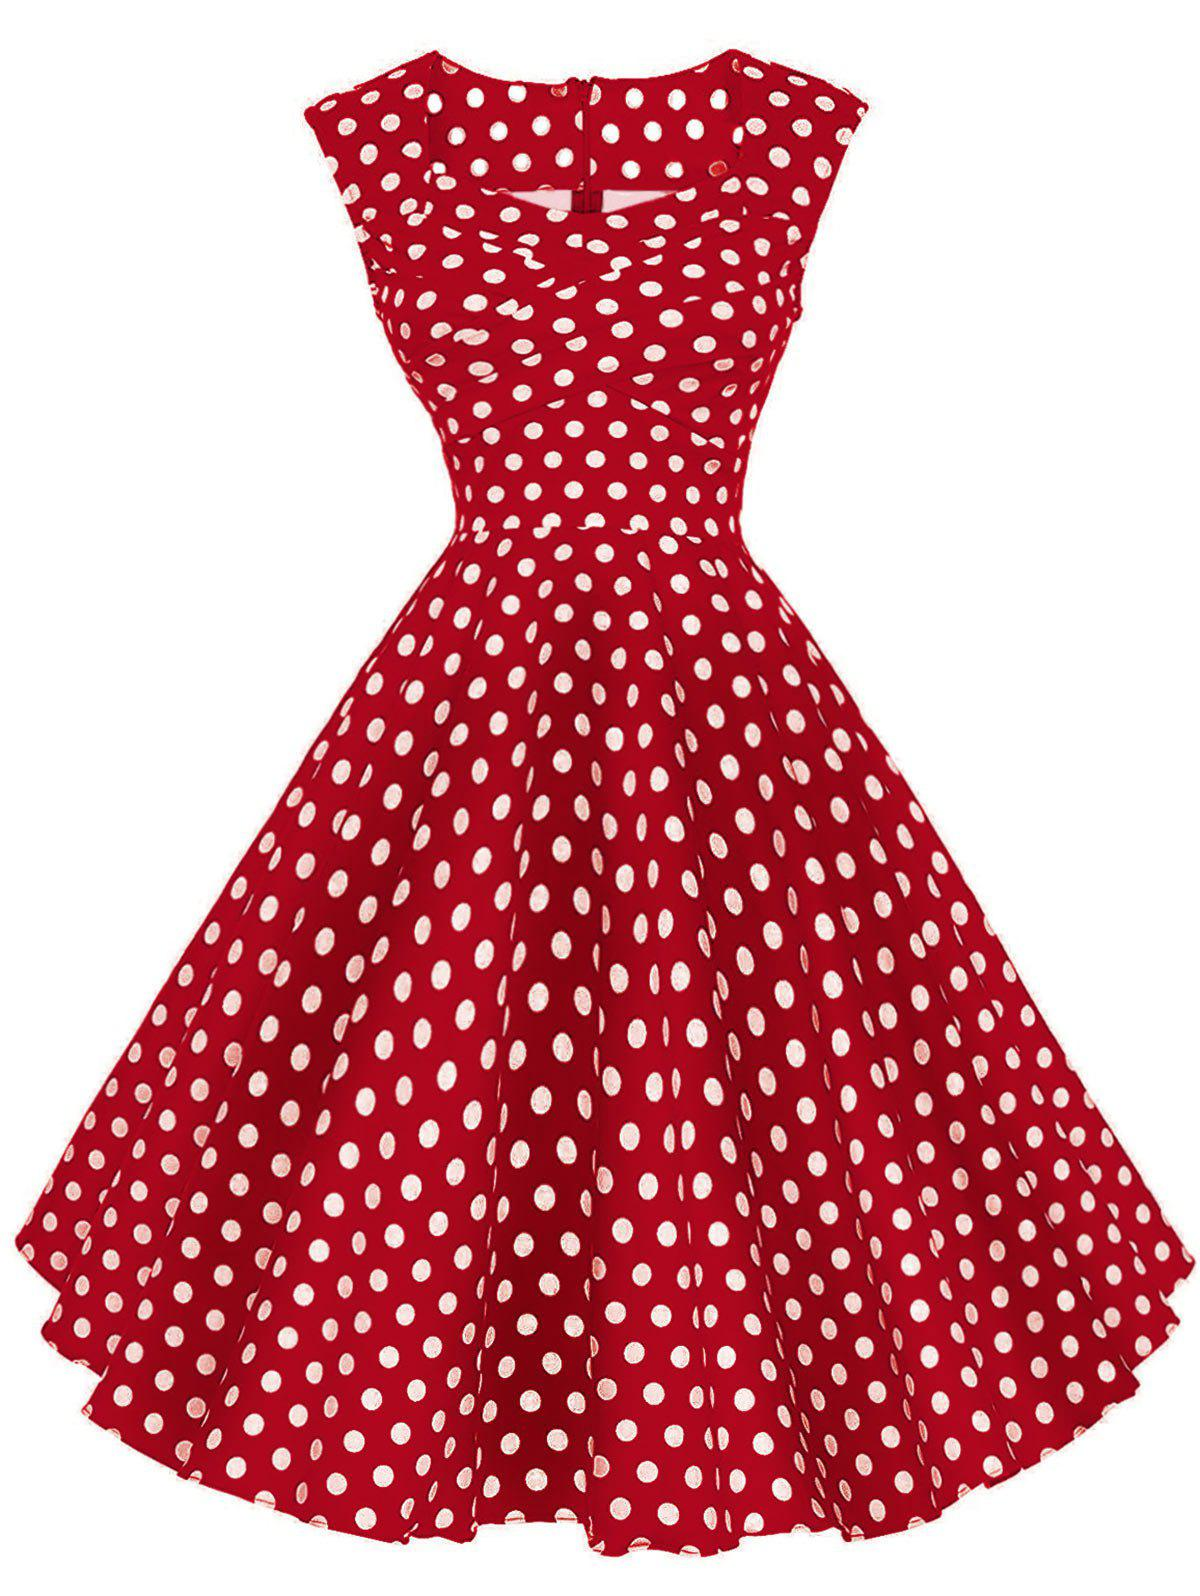 Shops Polka Dot Sleeveless Party Dress